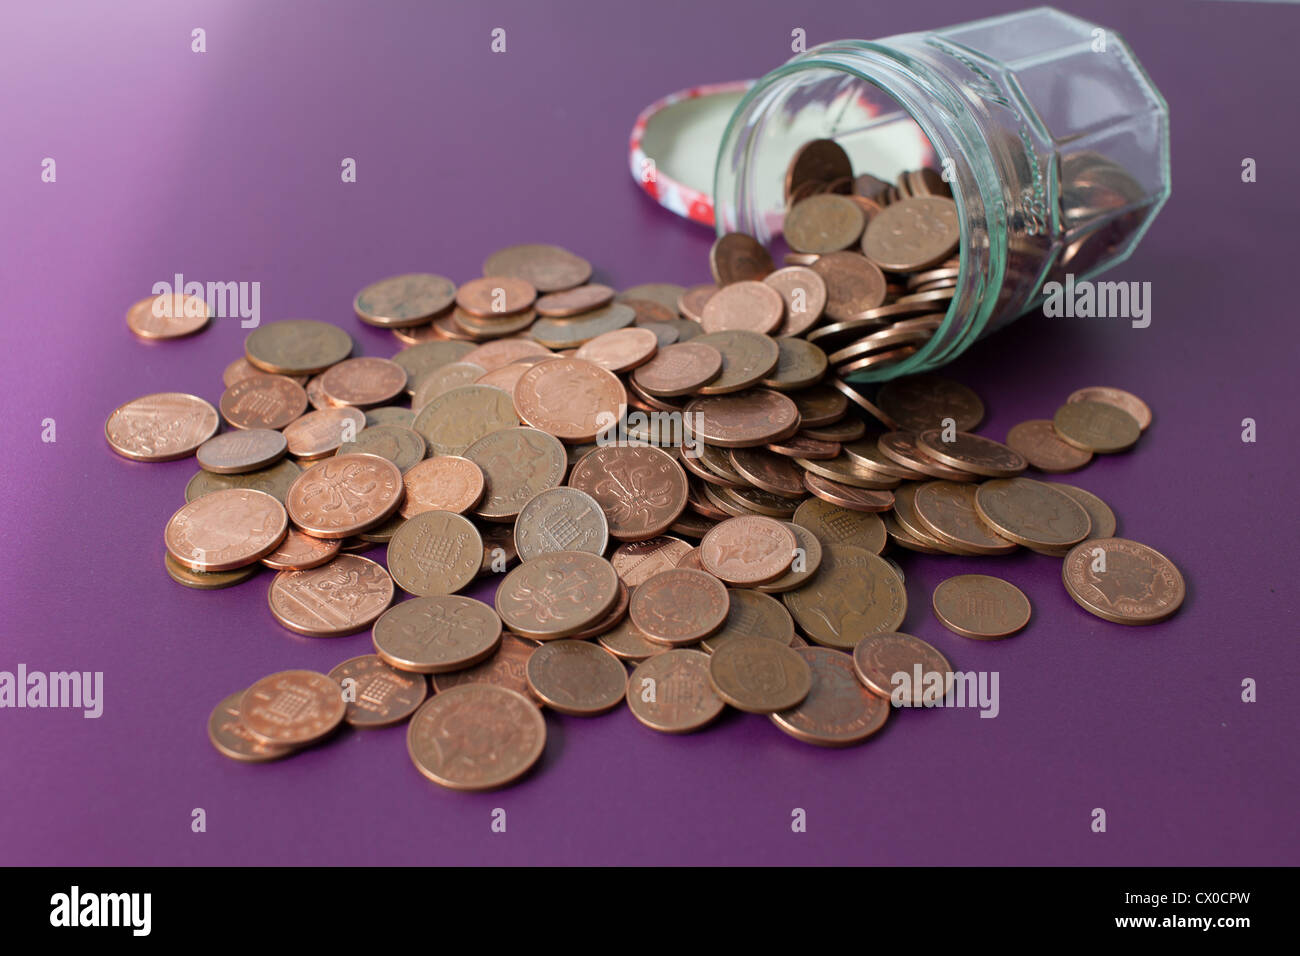 Jar full with pennies - Stock Image